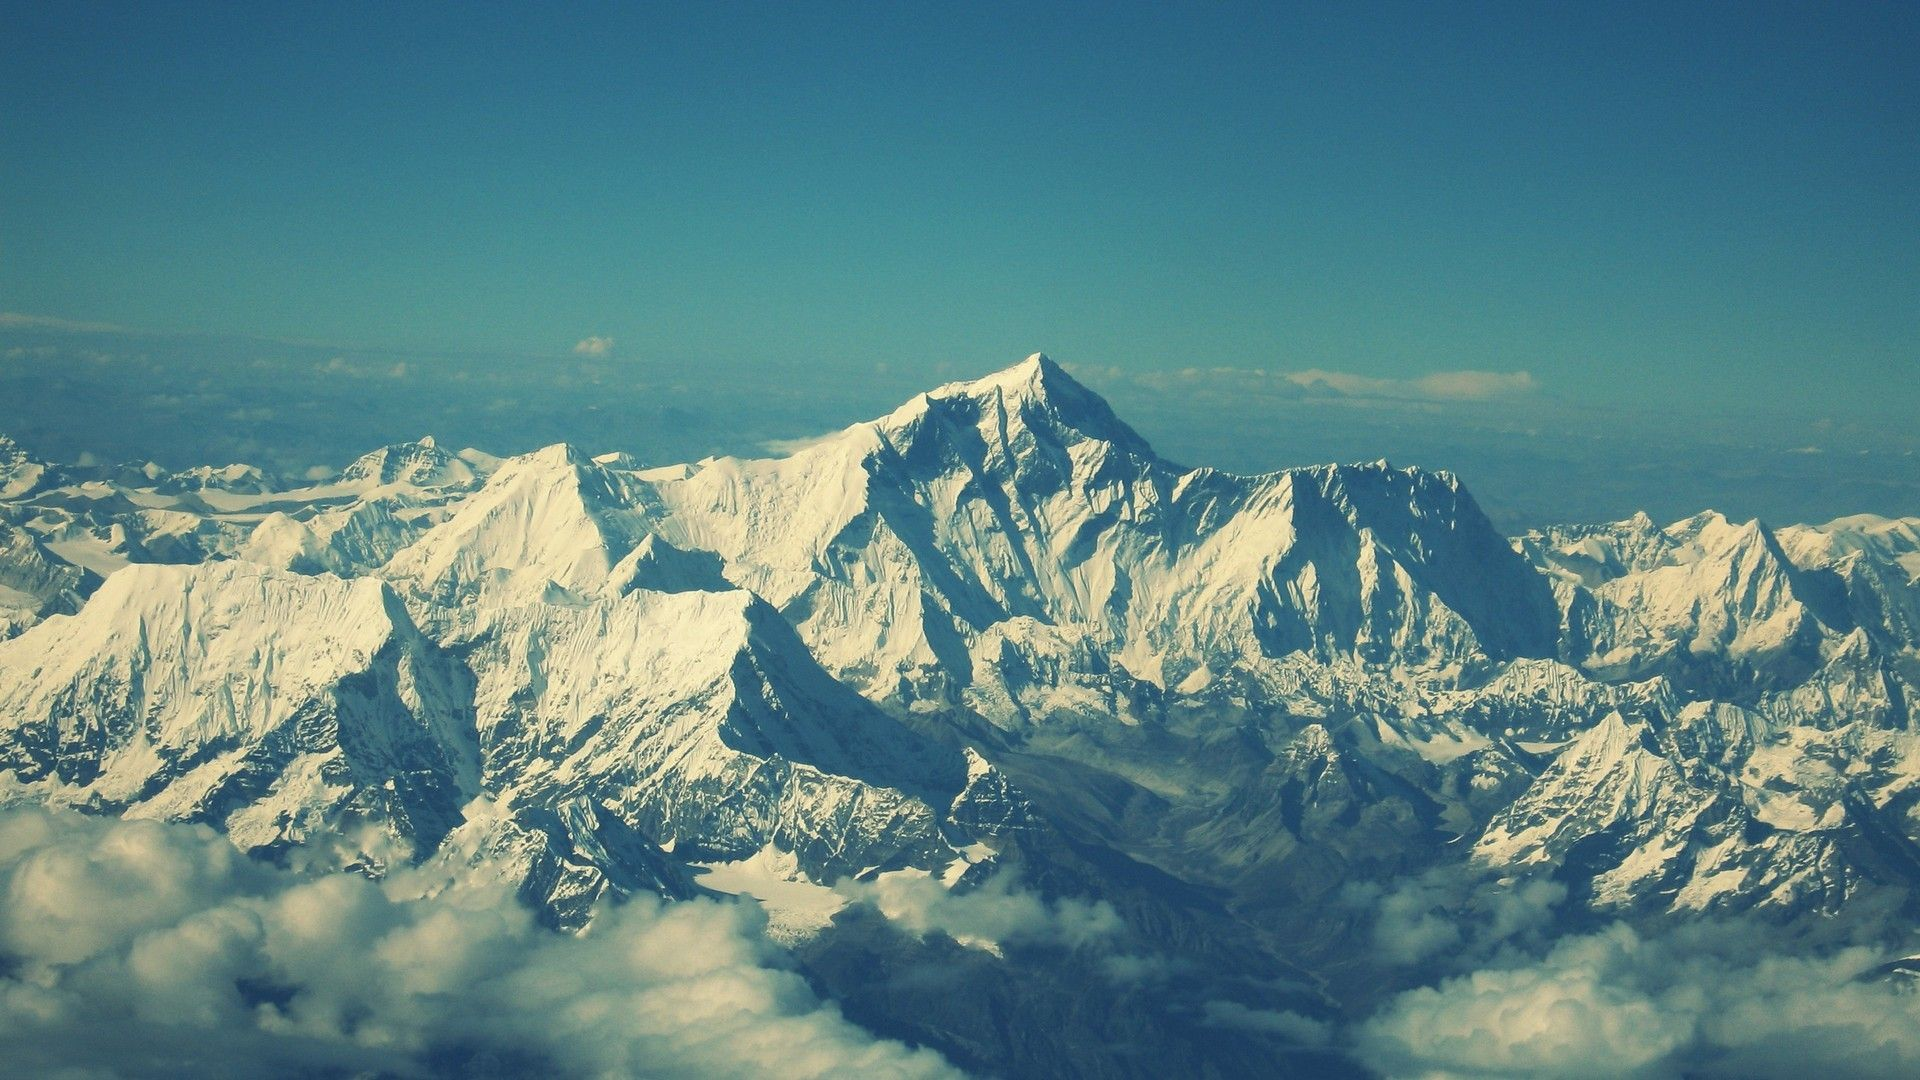 Mount Everest Wallpapers Top Free Mount Everest Backgrounds Wallpaperaccess